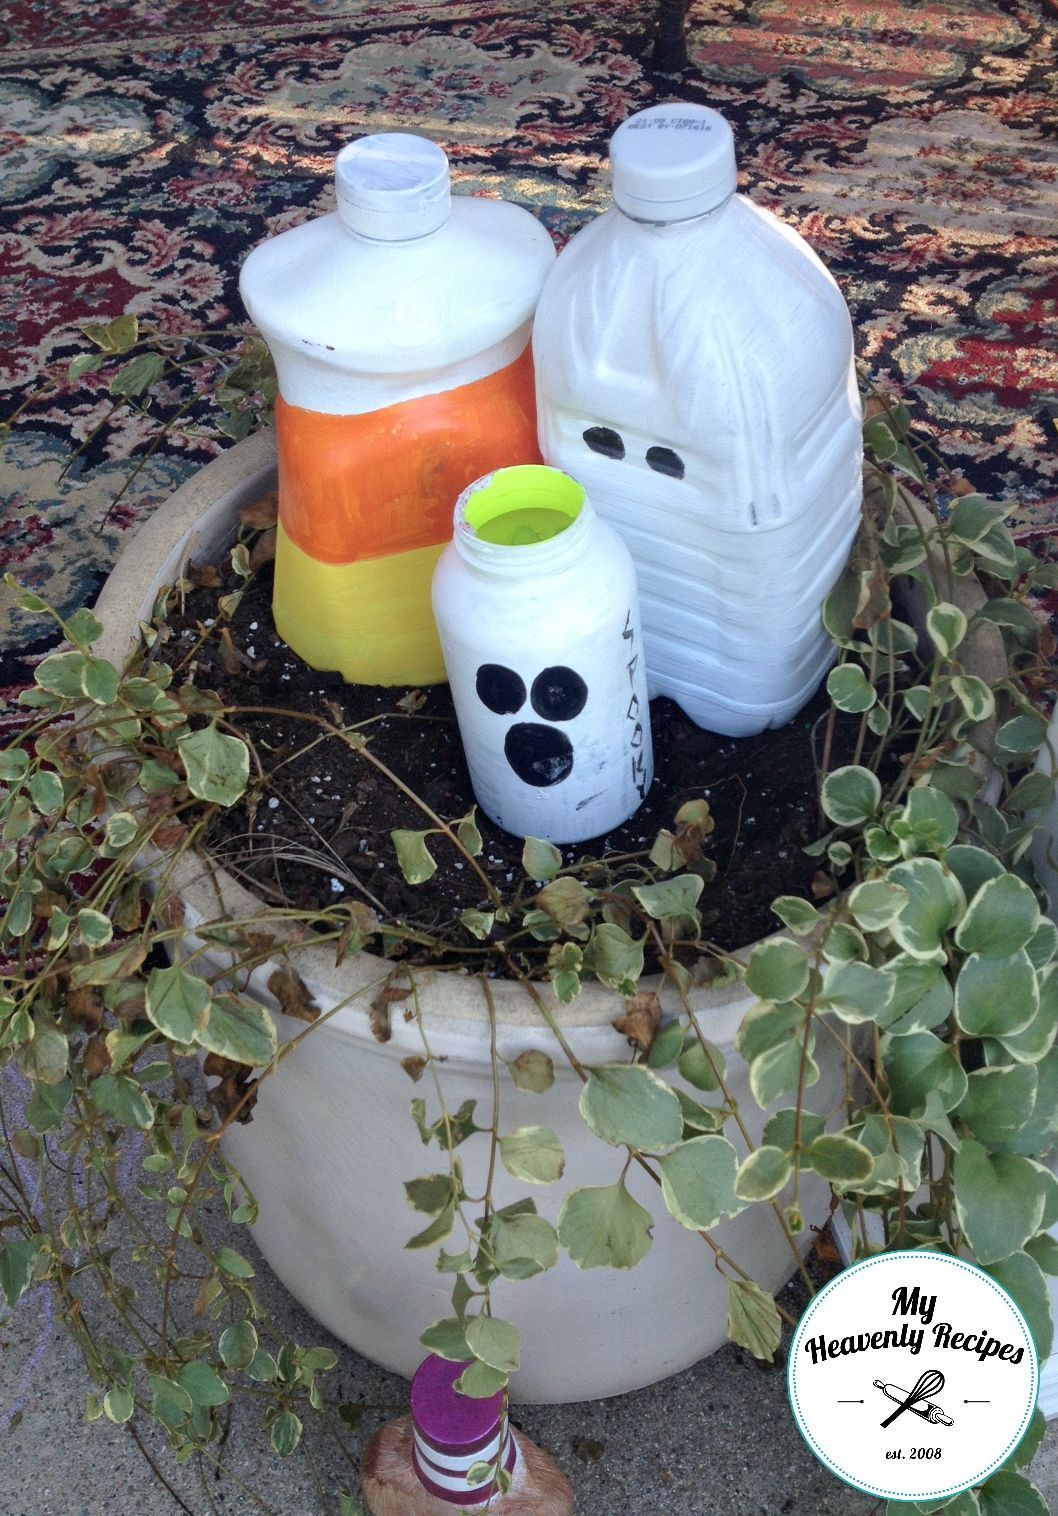 DIY Halloween Decorations Made From Plastic Jugs #plasticjugs DIY Halloween Decorations Made From Plastic Jugs #plasticjugs DIY Halloween Decorations Made From Plastic Jugs #plasticjugs DIY Halloween Decorations Made From Plastic Jugs #plasticjugs